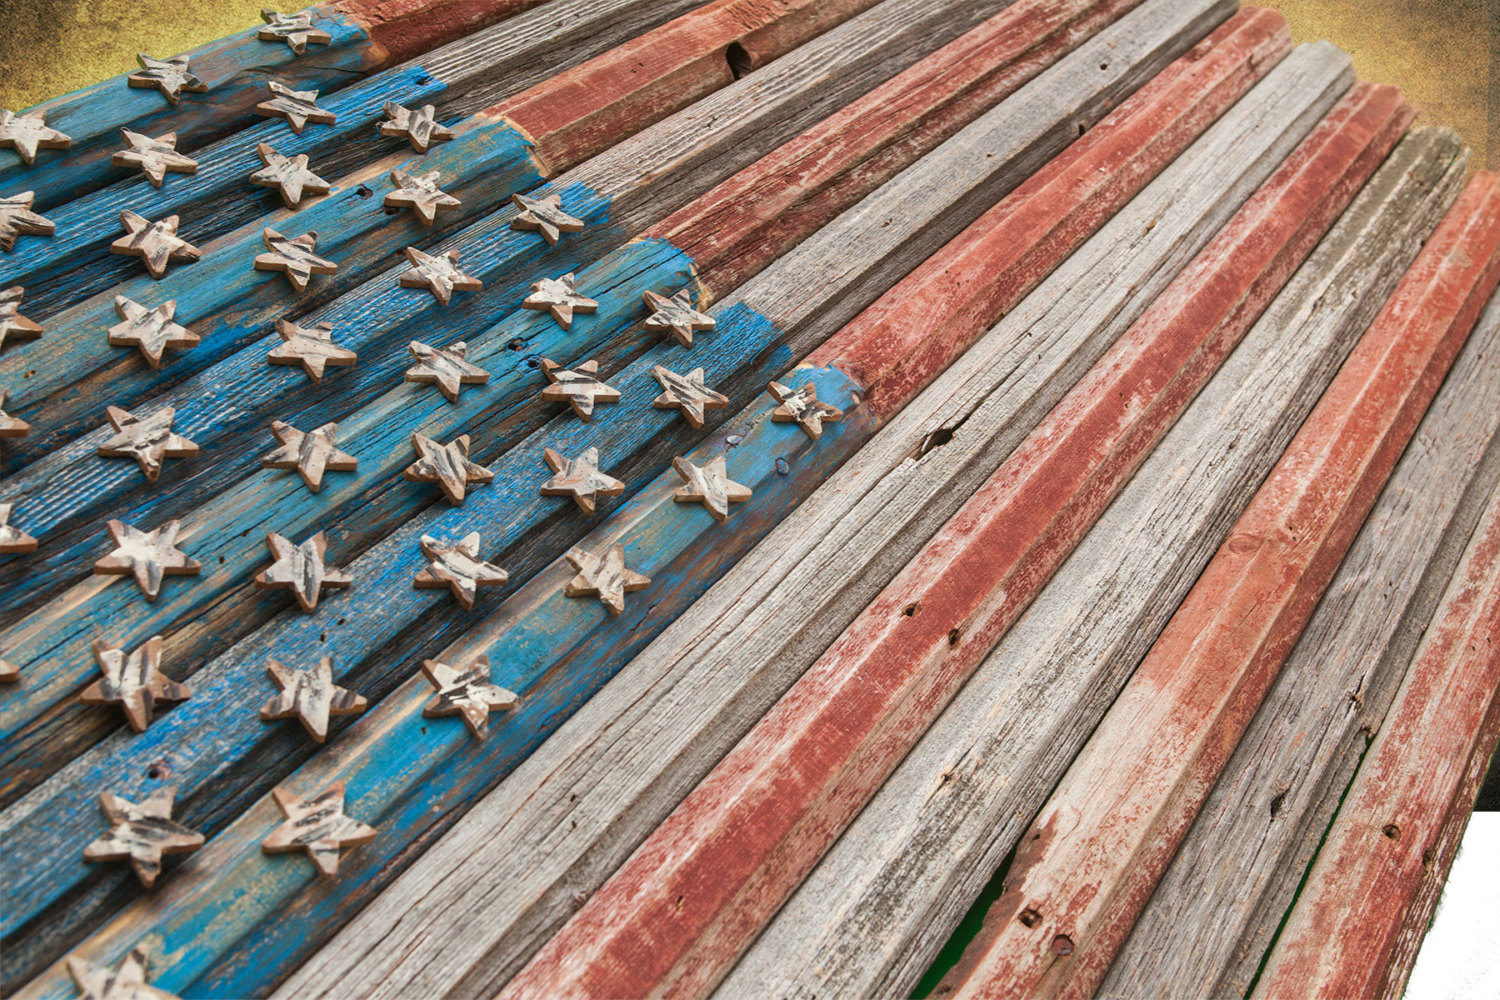 American Flag, Reclaimed Barn Wood, One Of A Kind, 3D, Wooden, Vintage,  Art, Distressed, Red, Blue, Gray Patriotic, Wall Art Usa, Home Decor With American Flag 3D Wall Decor (Image 12 of 30)